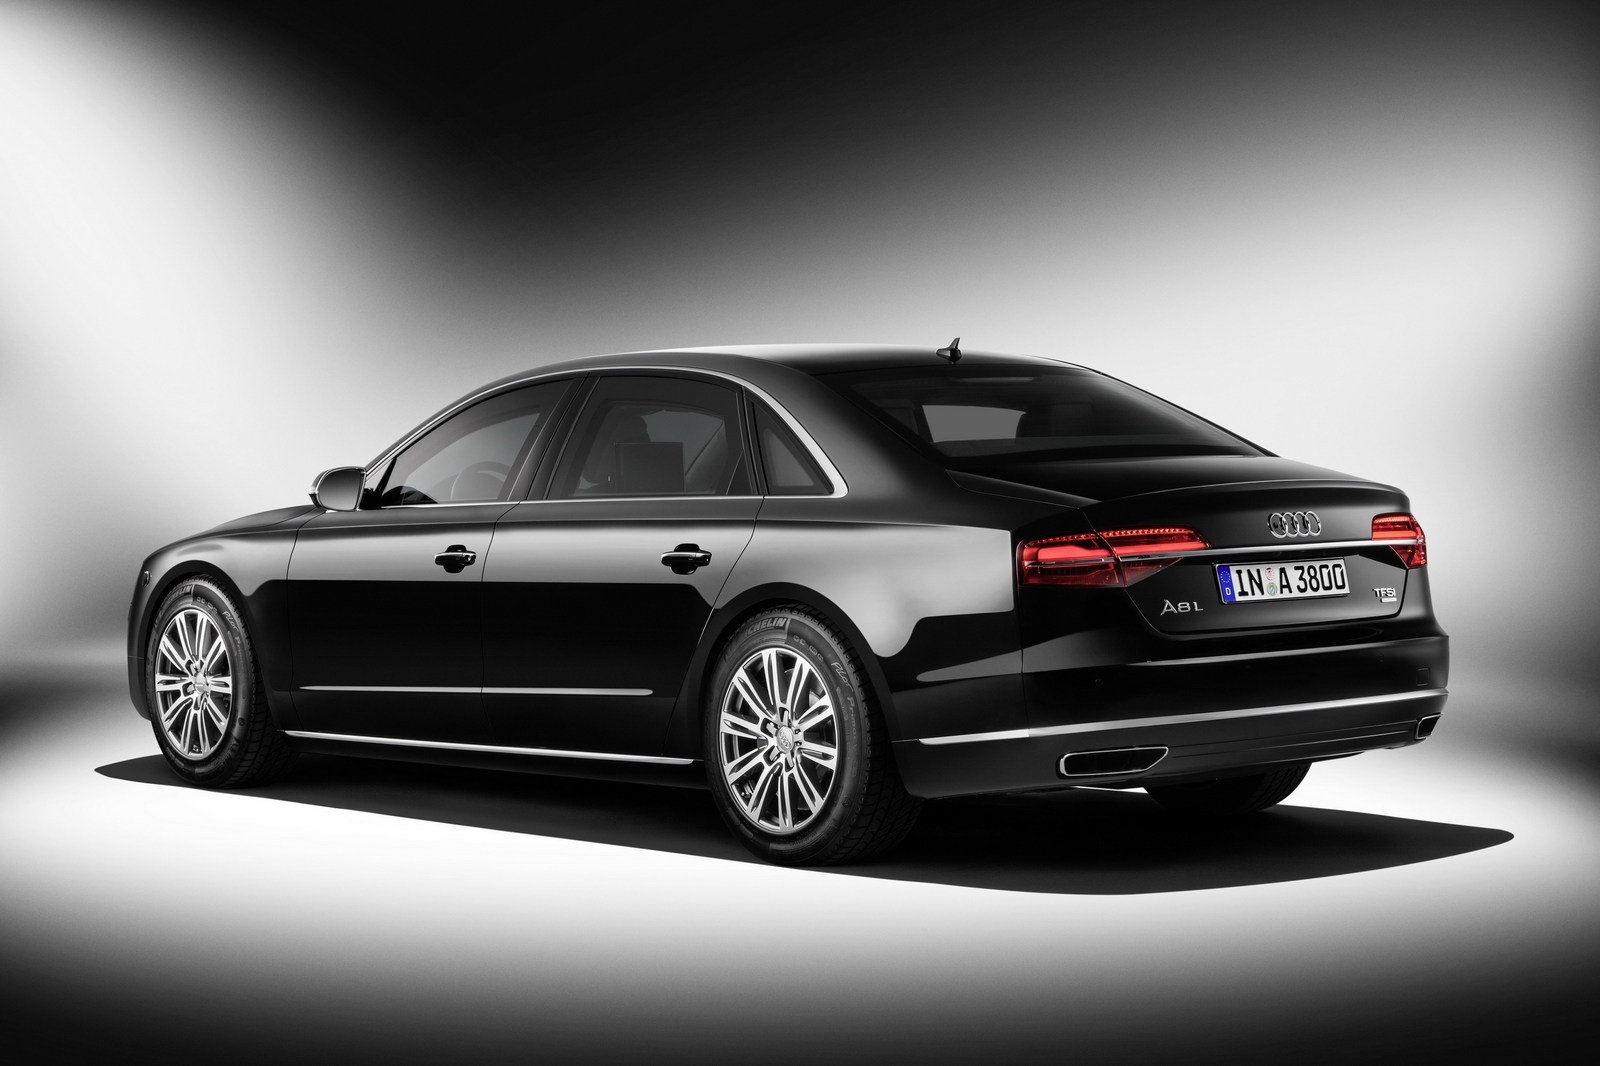 2016 audi a8 l security picture 645005 car review. Black Bedroom Furniture Sets. Home Design Ideas